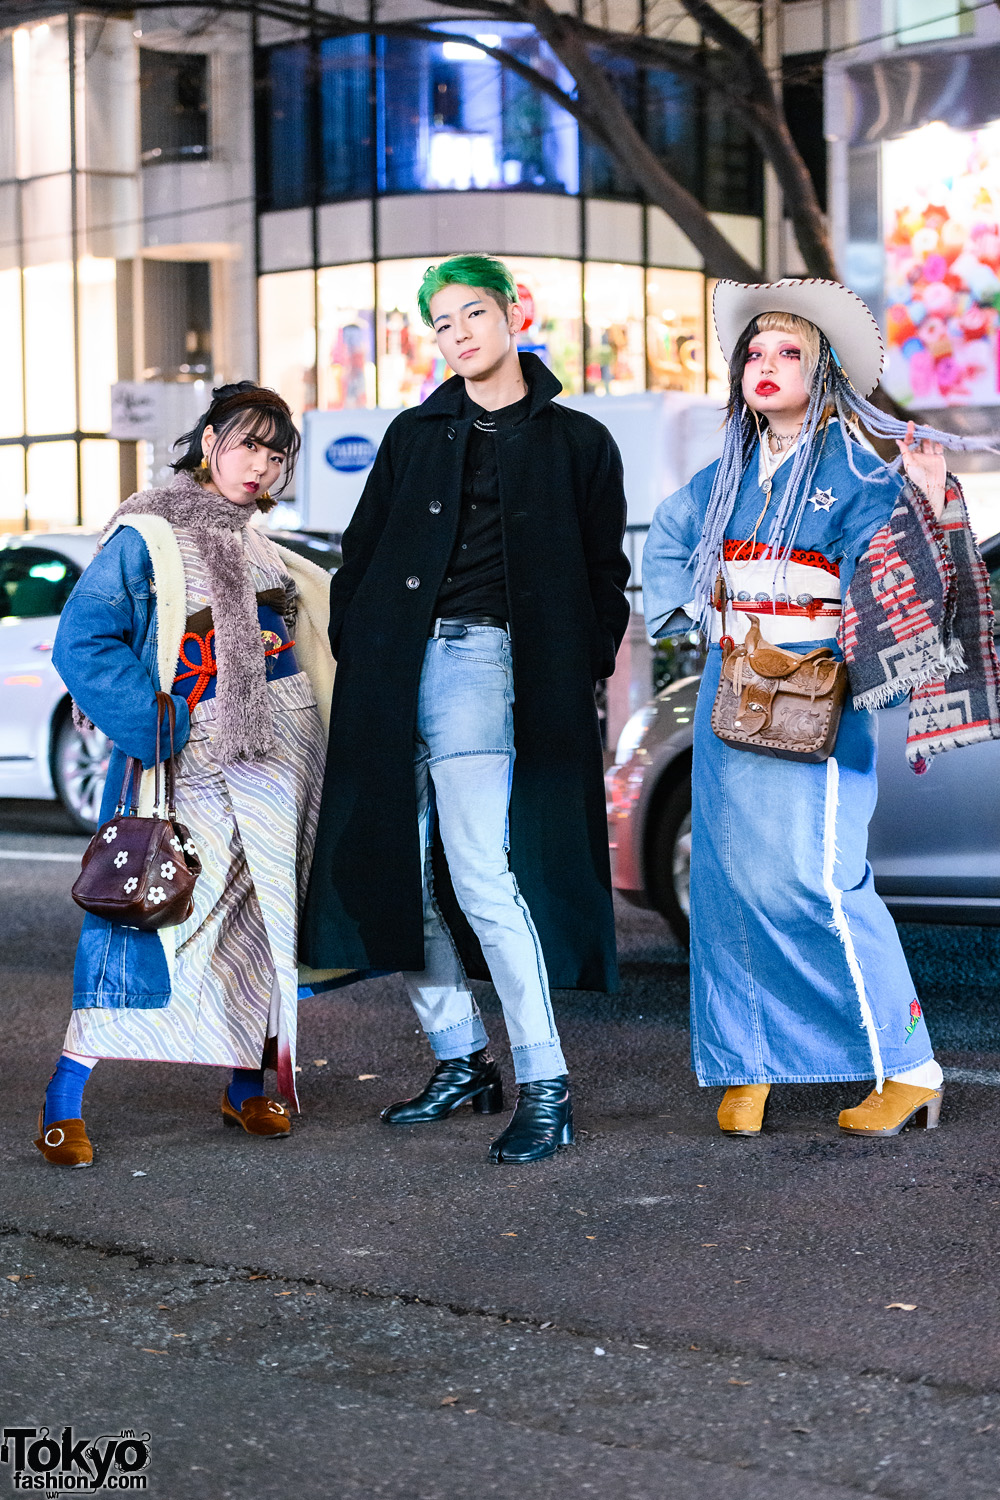 Japanese Trio's Styles w/ Cowboy Hat, Green Hair, Lee Denim Shearling Coat, Comme des Garcons, JieDa 2-Way Jeans, Remake Kimono & Maison Margiela Tabi Boots